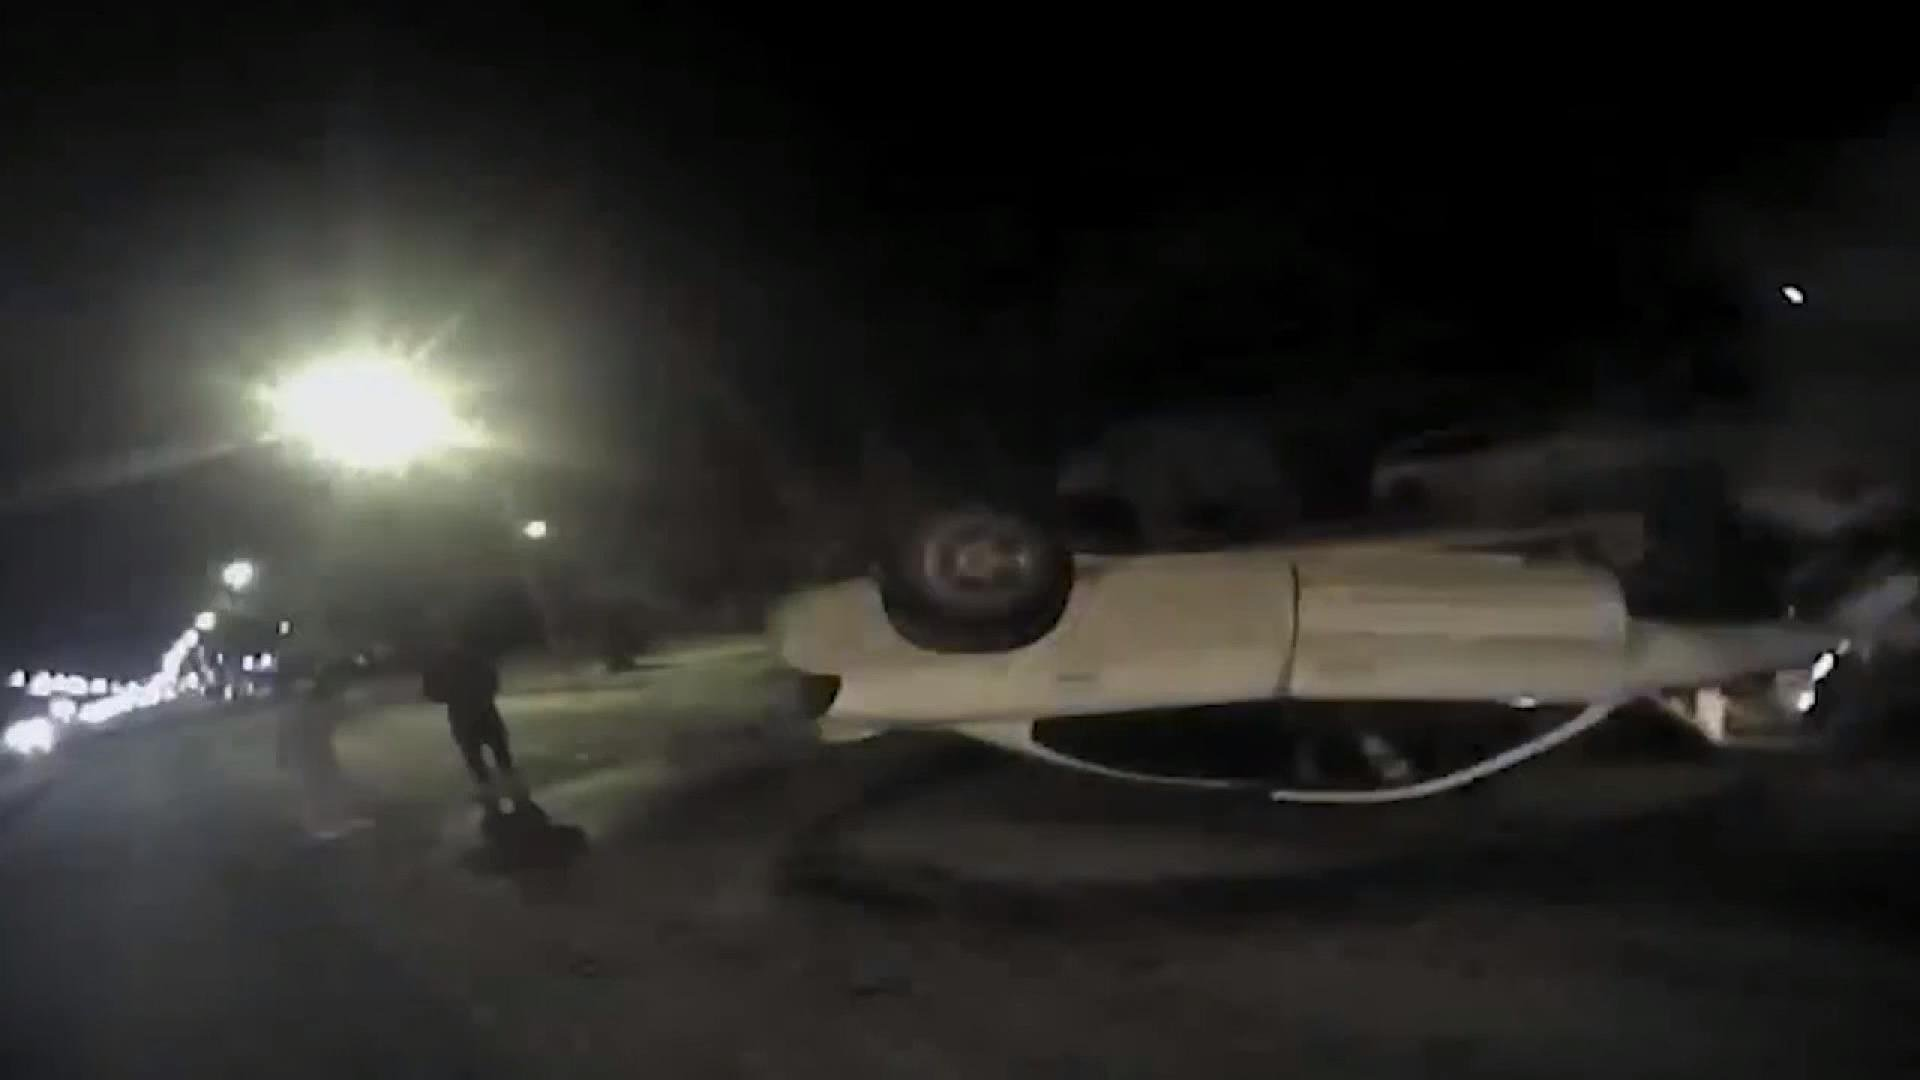 Caught on camera: 2 Wisconsin cops rescue teens from burning auto